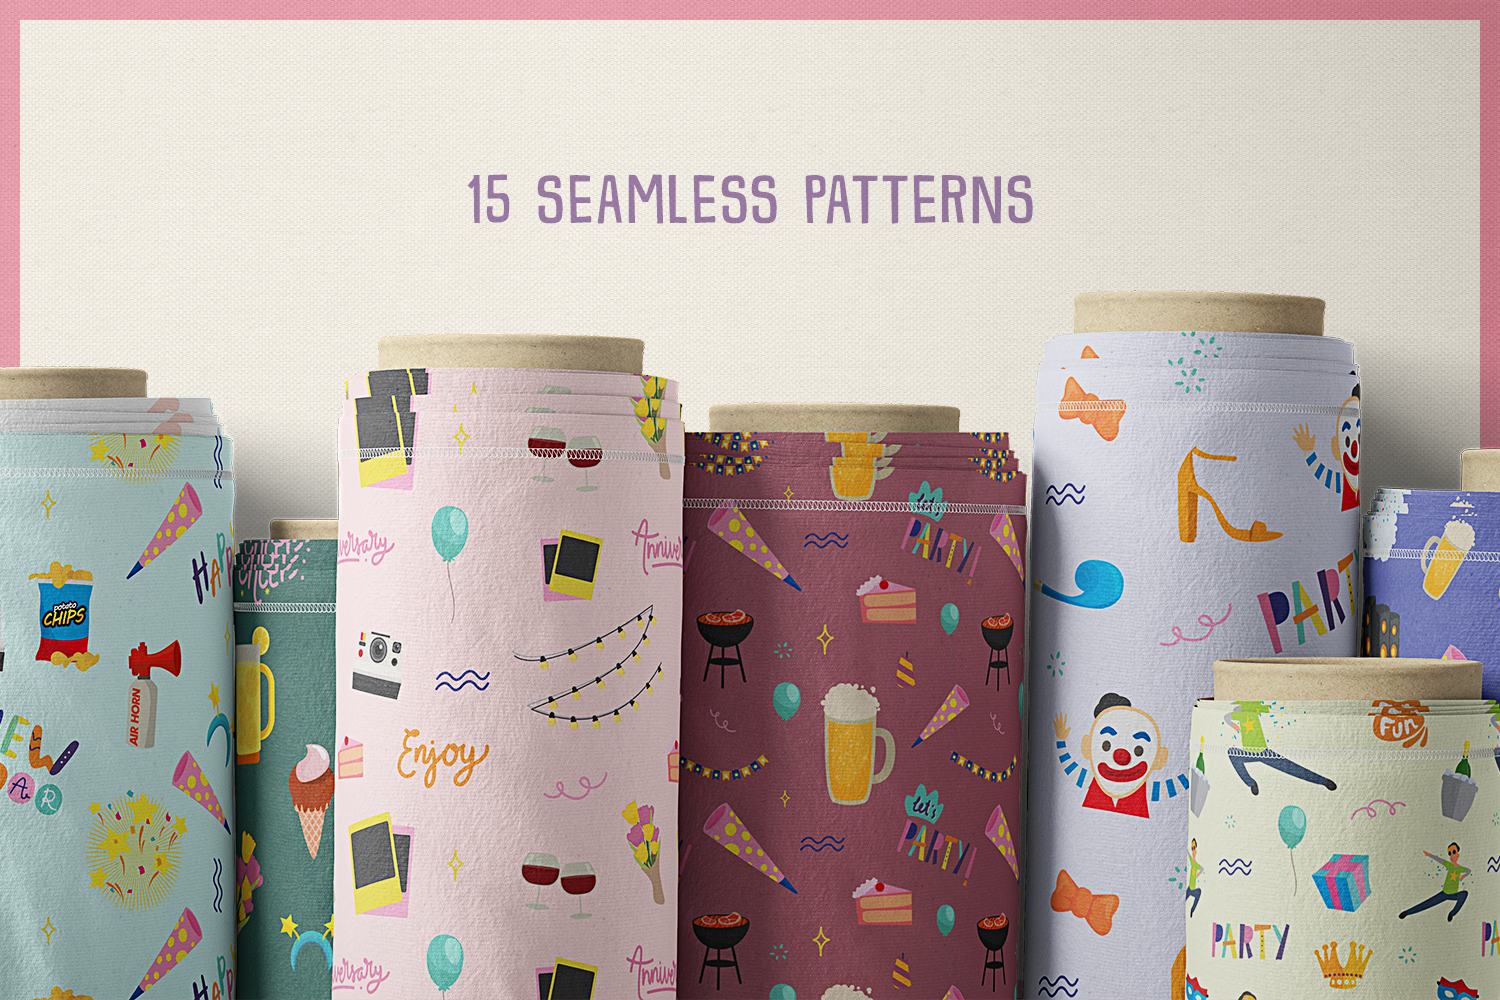 80 All About Party Vector Clipart & Seamless Patterns example image 7